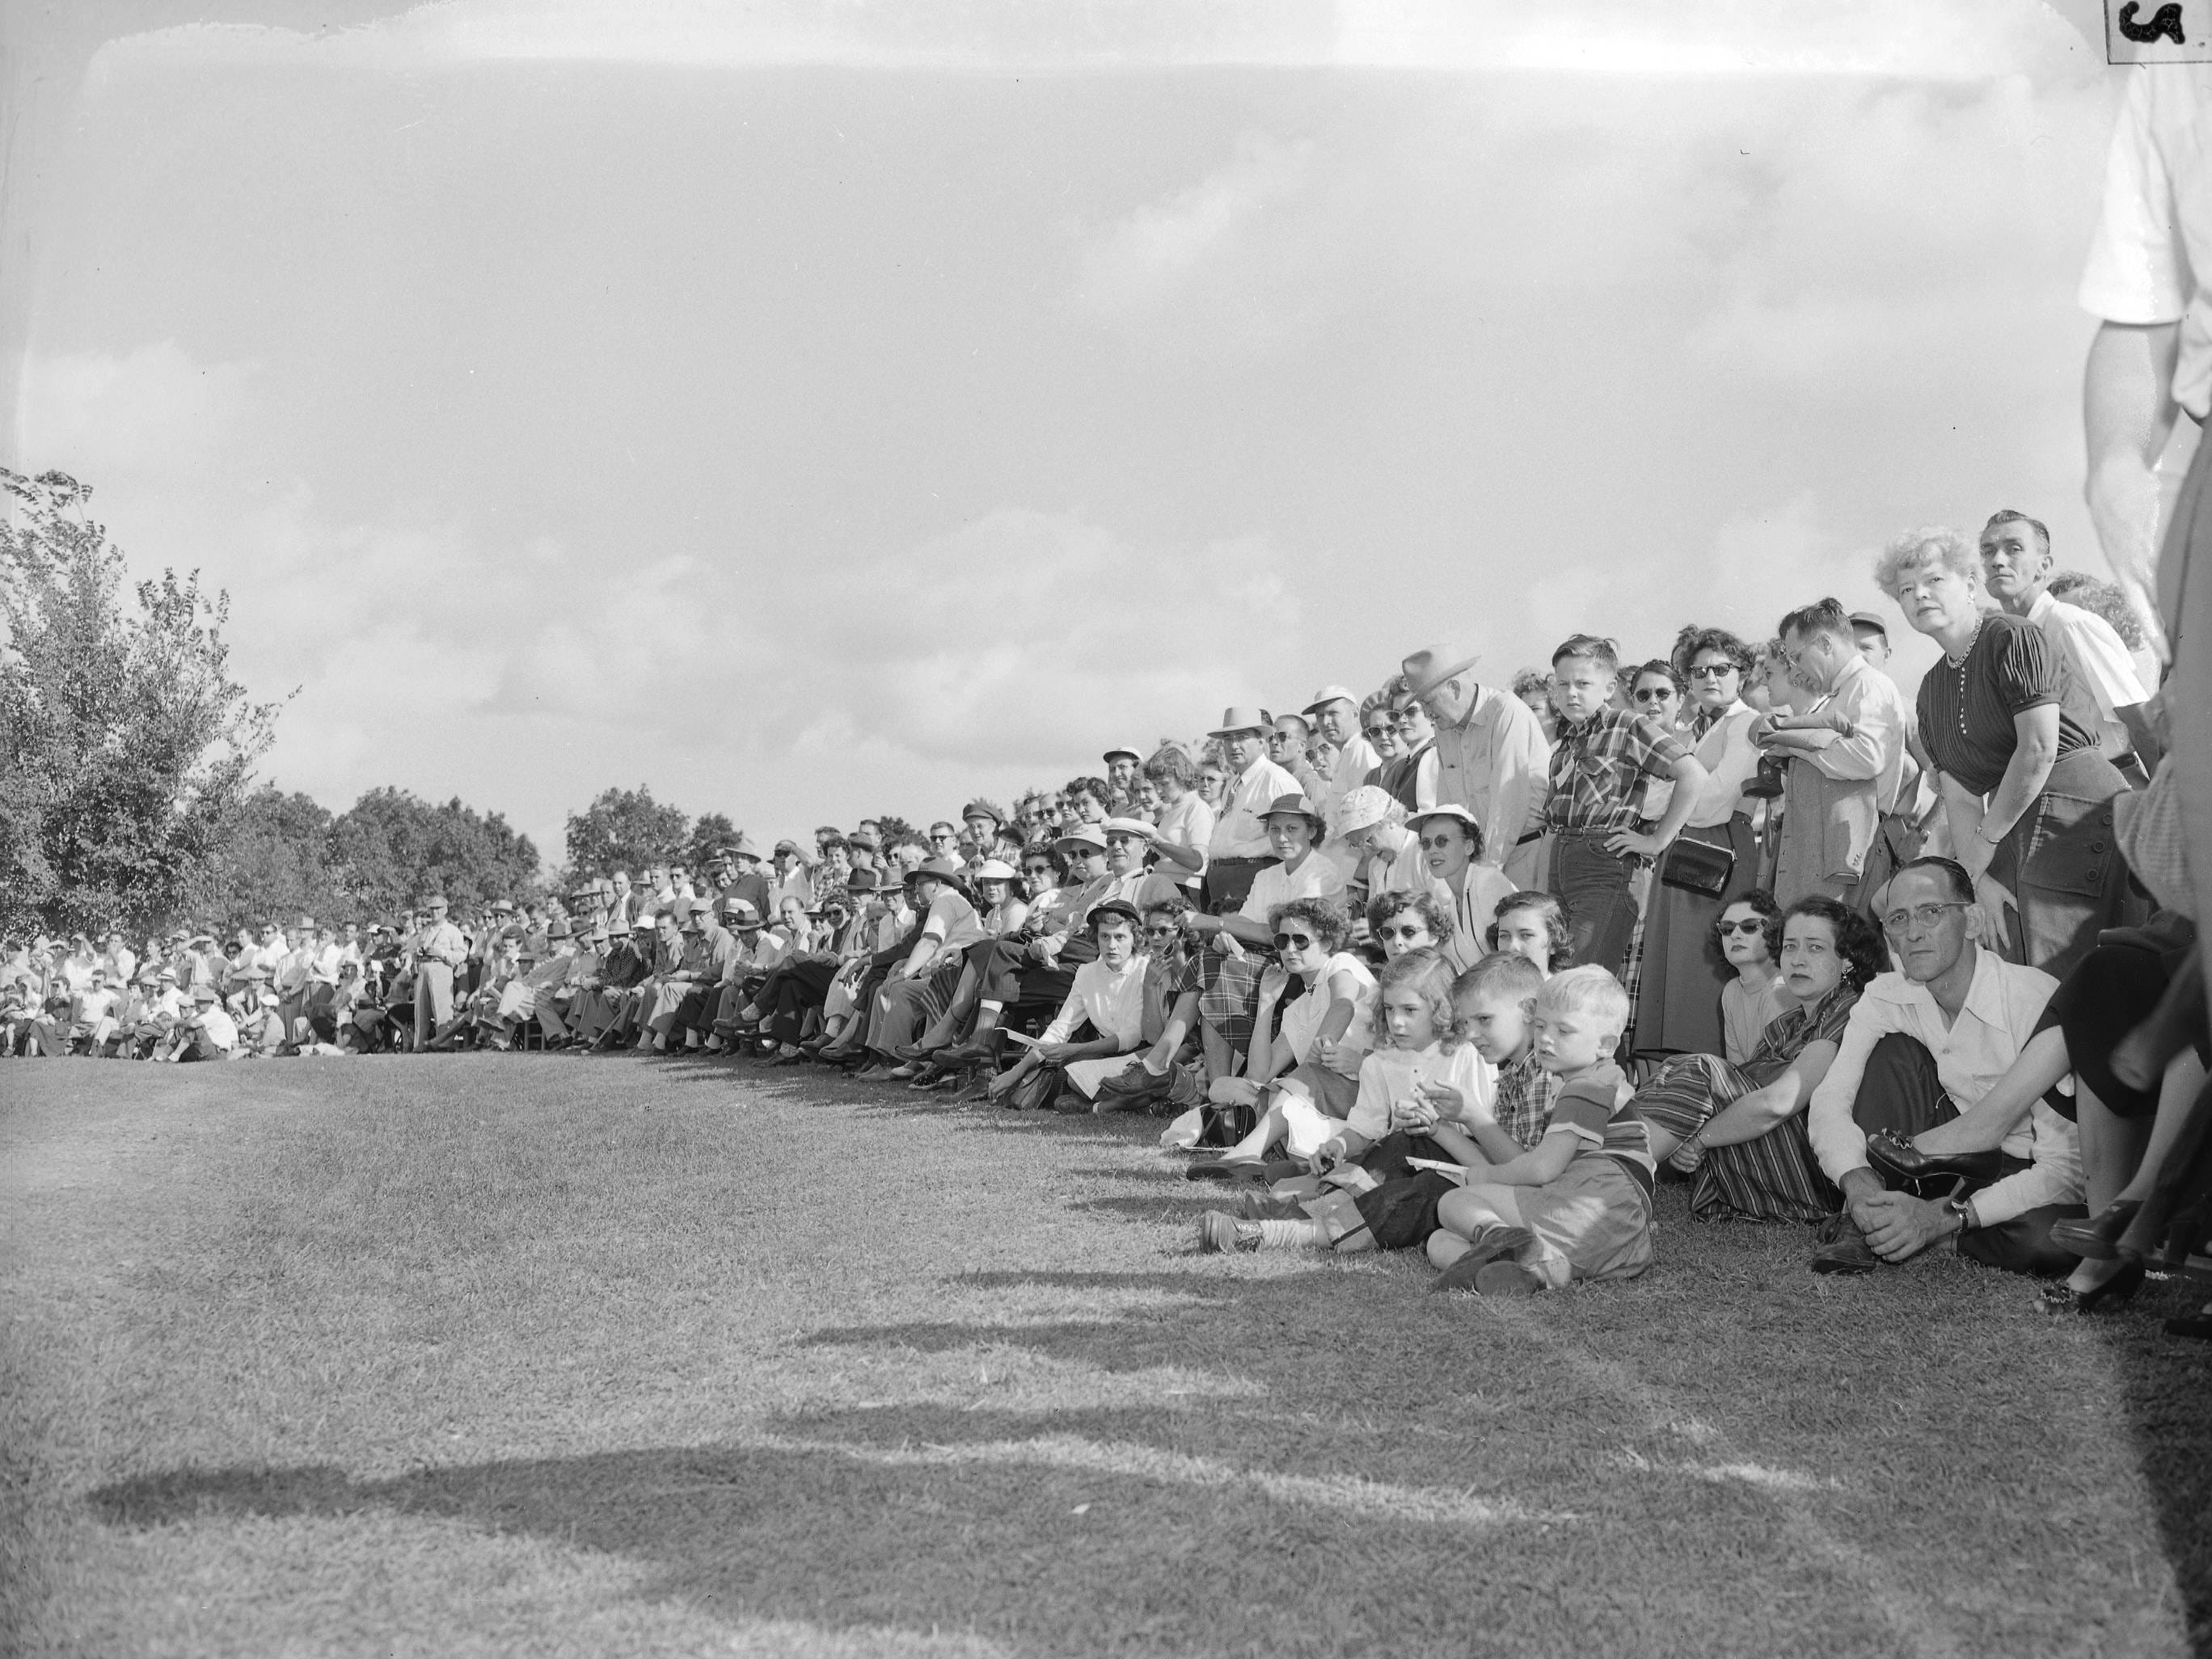 Attendees of the Ozarks Open golf tournament. Four thousand five hundred people attended the final 36-hole session at the Ozark Open golf tournament. Published in the Leader & Press on October 2, 1950.